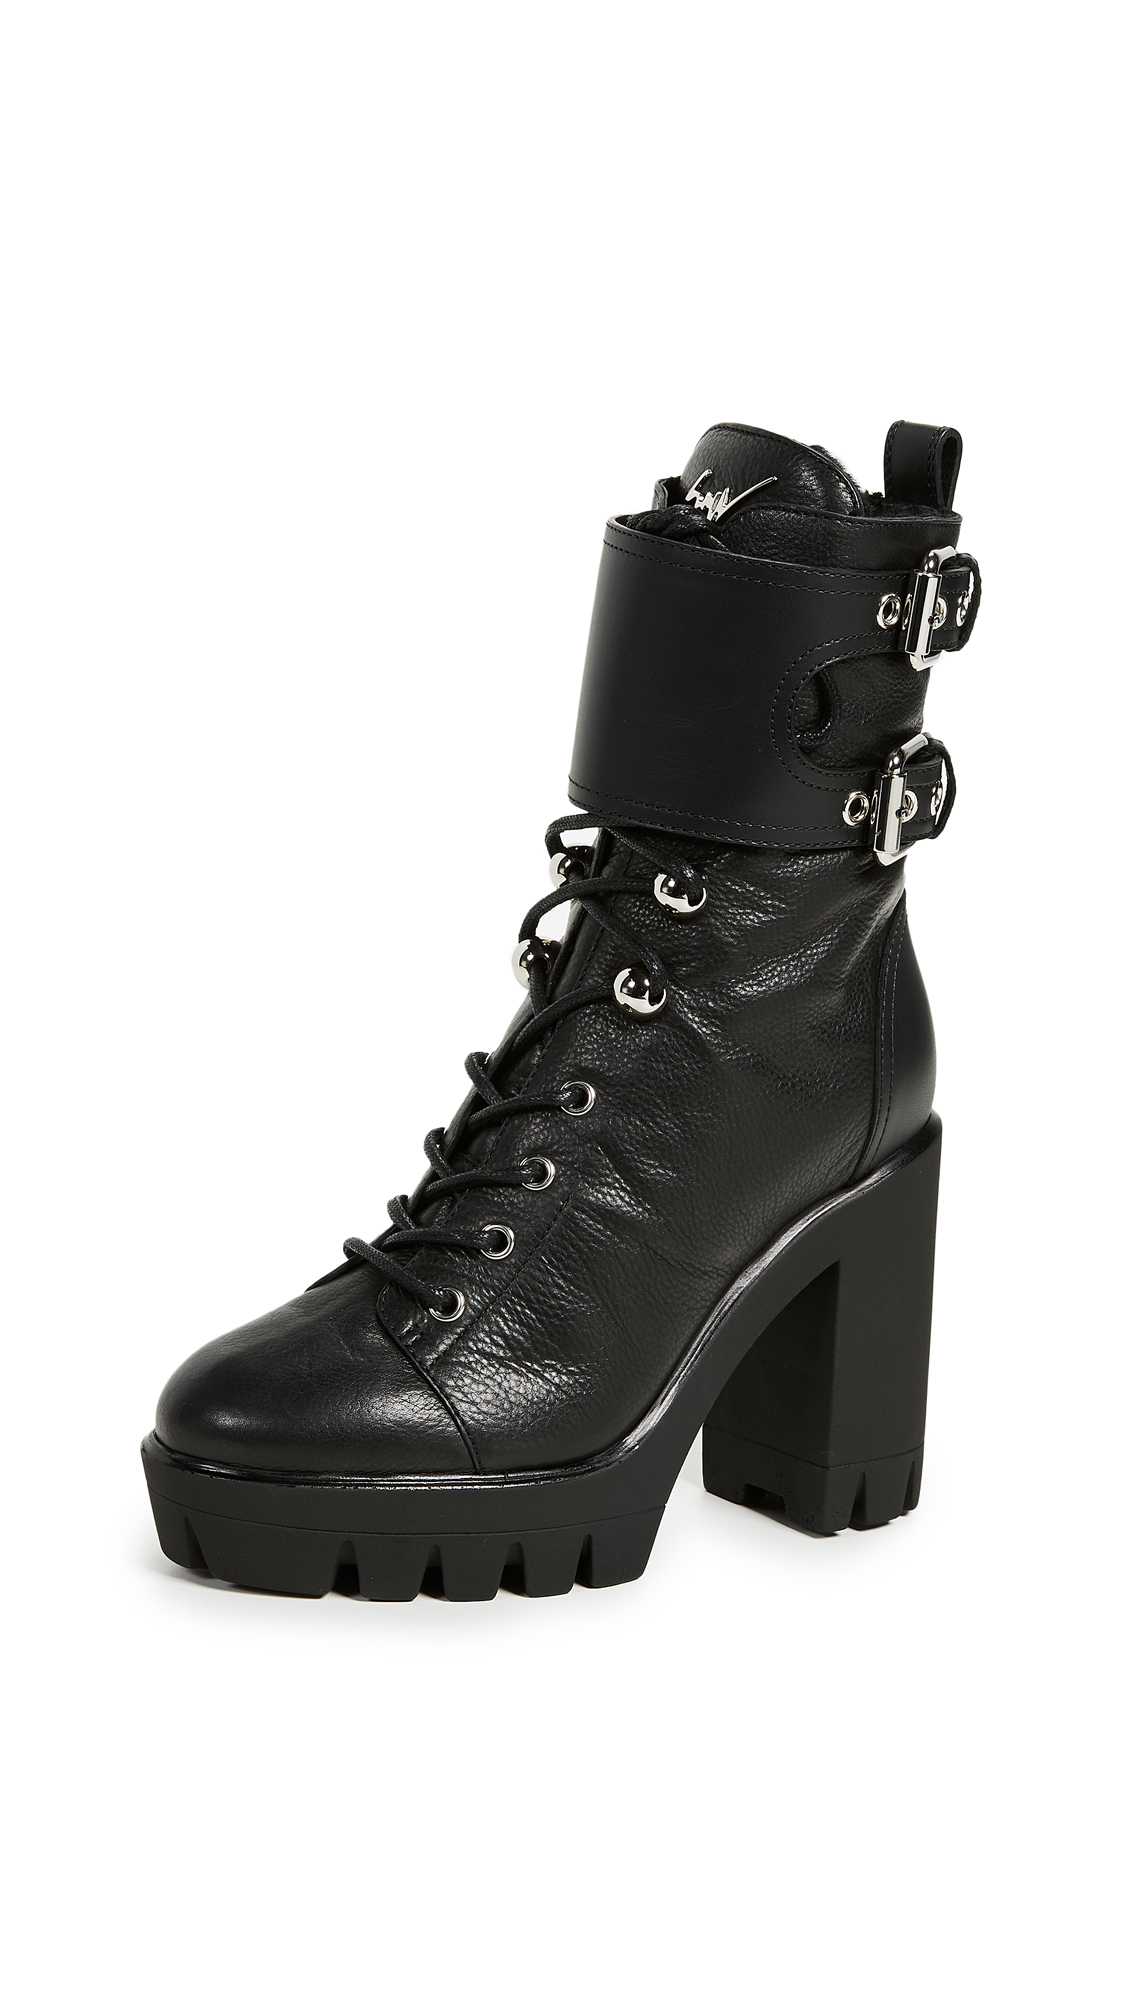 Photo of Giuseppe Zanotti Heeled Buckle Ankle Boots online shoes sales